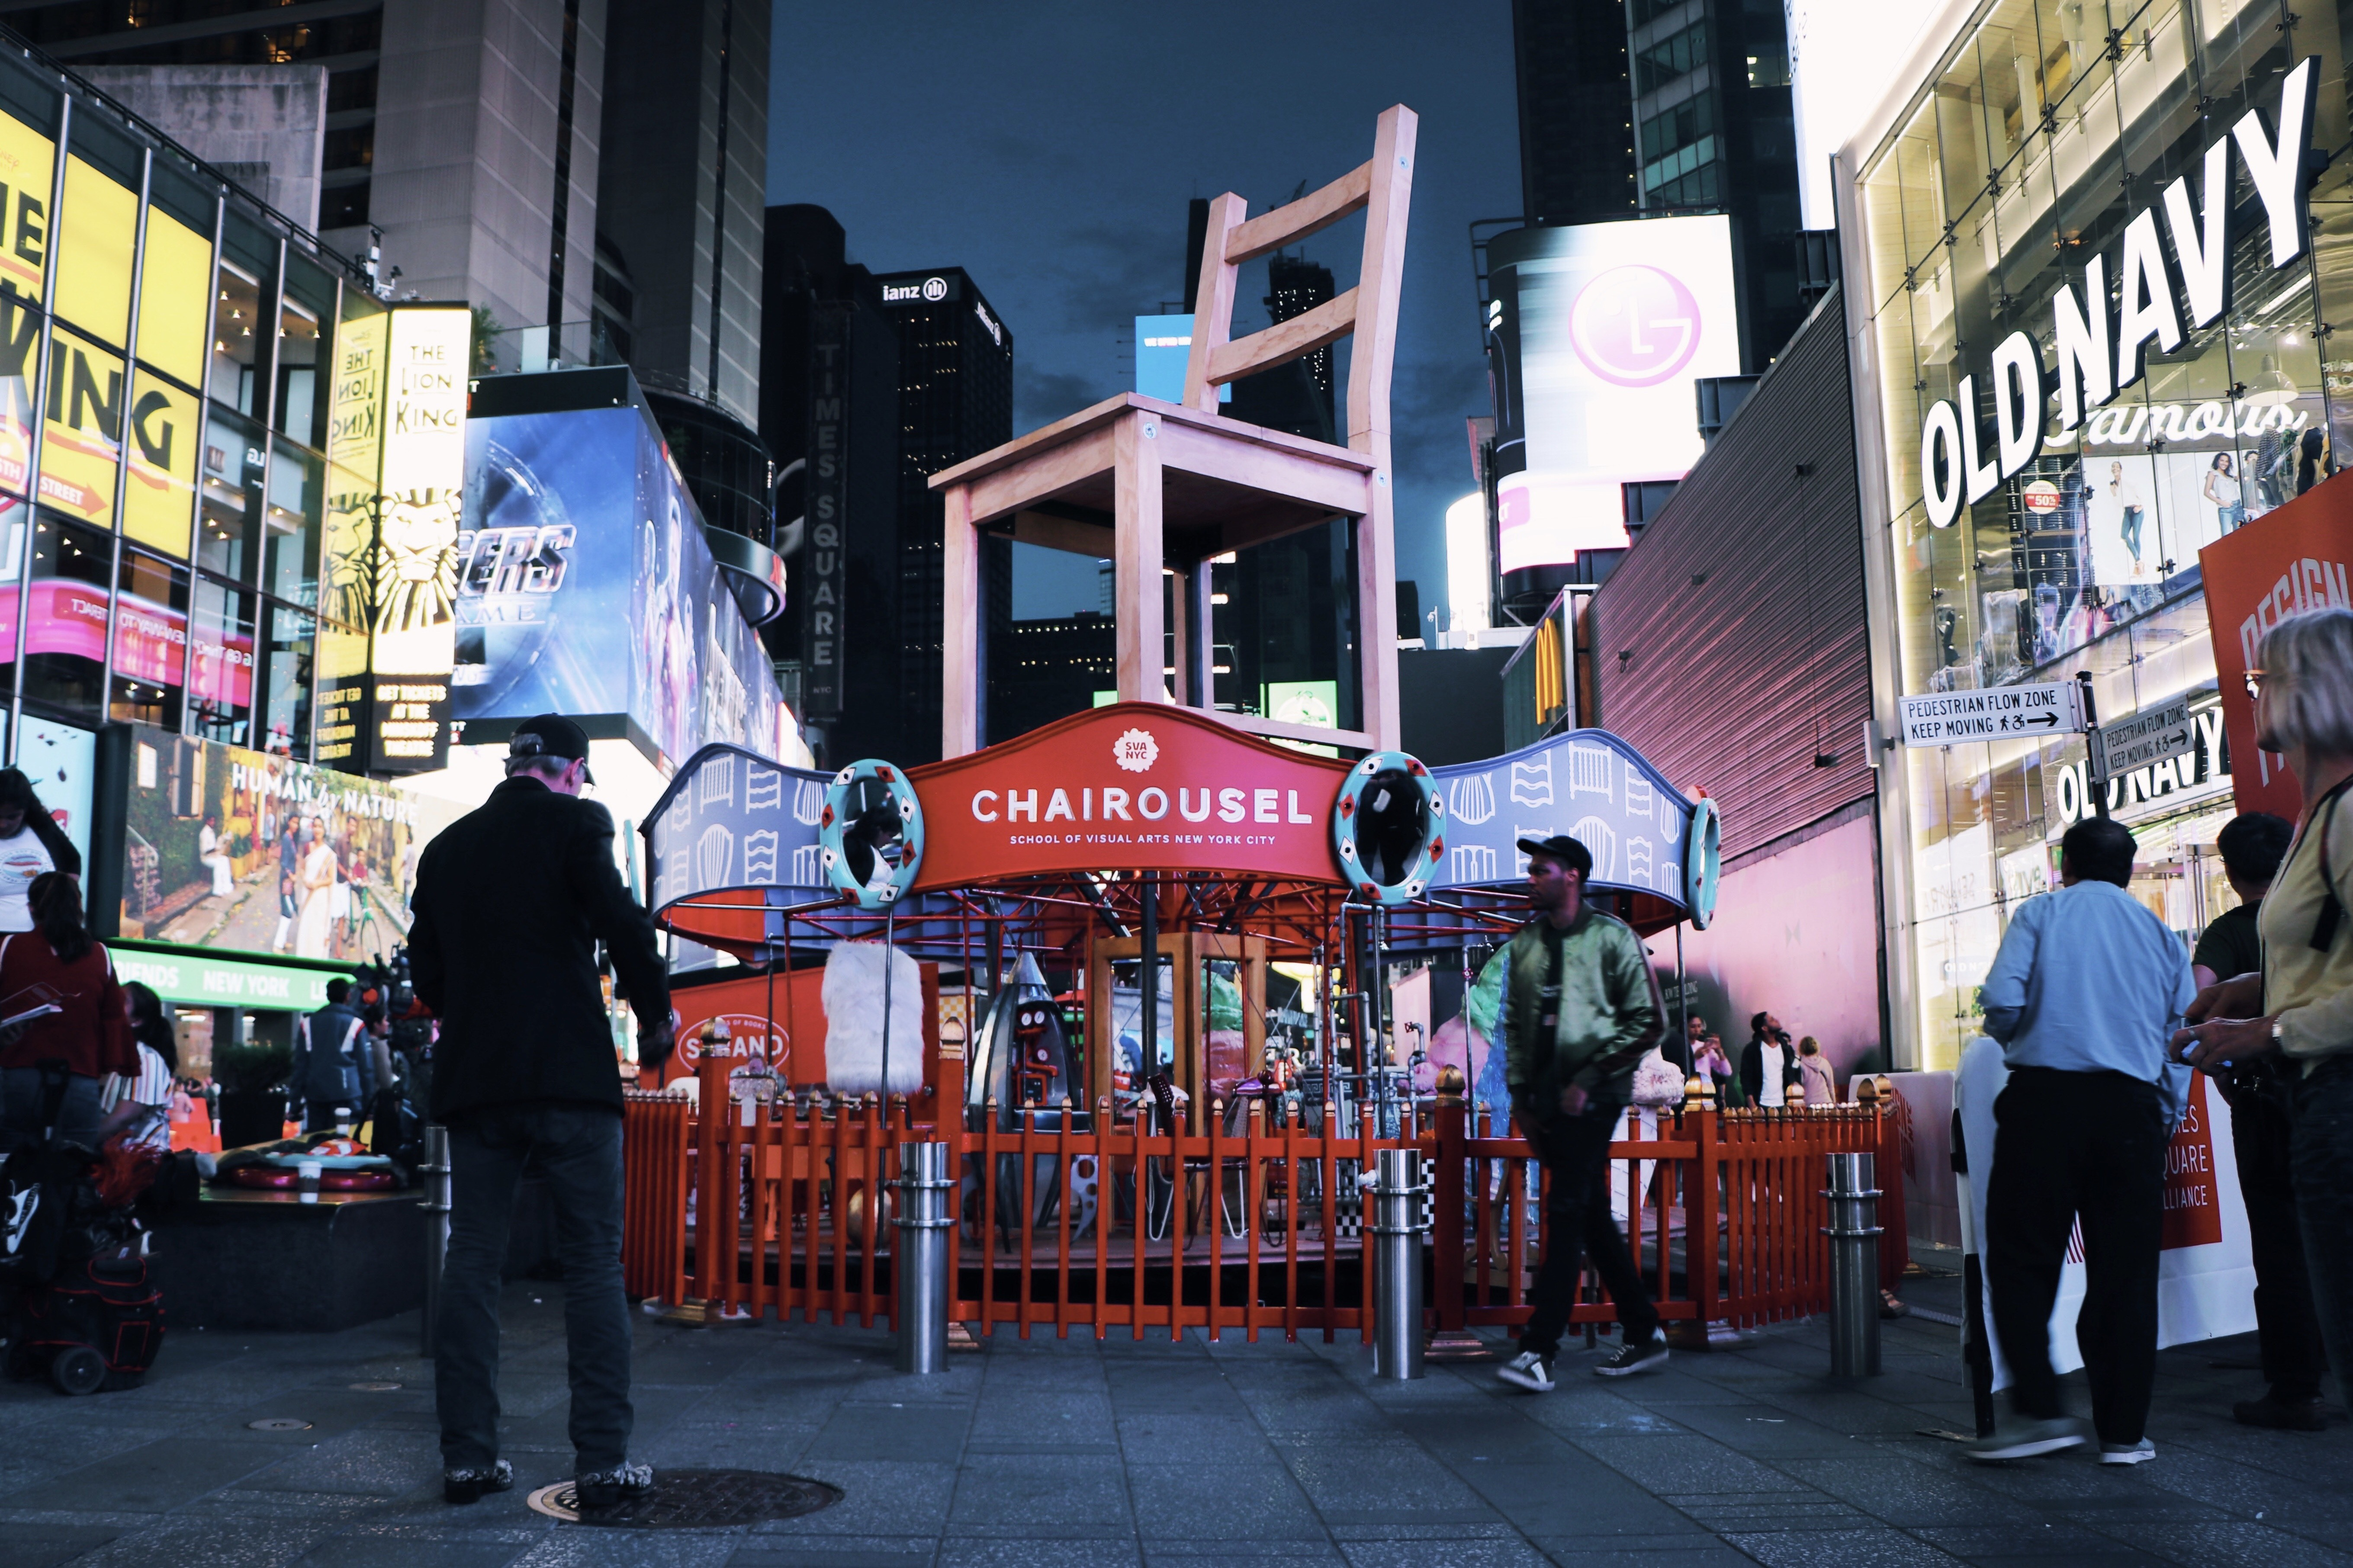 "An image of the new public exhibition of 3D art by students from SVA's BFA Design and BFA Interior Design programs<span class=""redactor-invisible-space"">. ""Chairousel""<span class=""redactor-invisible-space""> is currently up in New York City's Times Square, by Kevin O'Callaghan.<span class=""redactor-invisible-space""></span></span></span>"